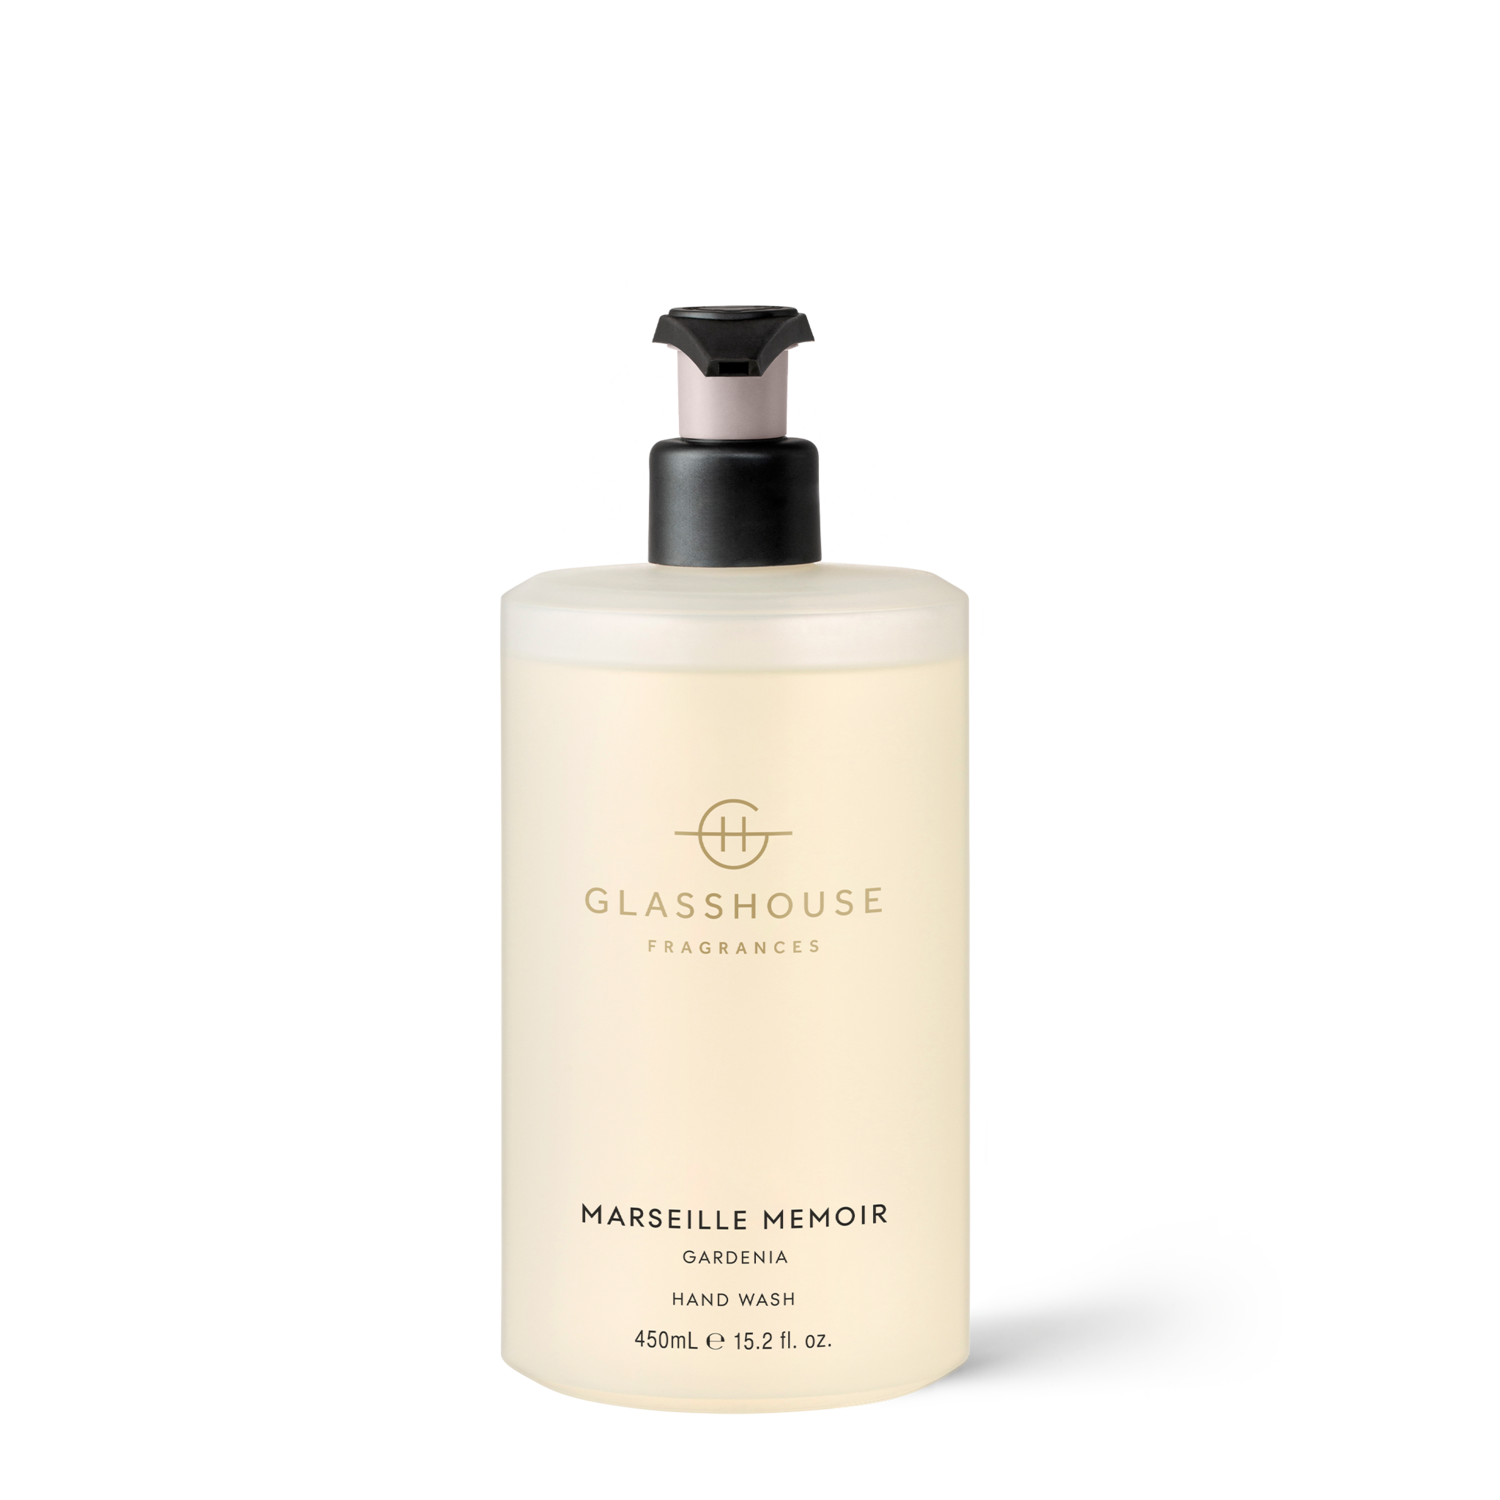 Marseille Memoir Hand Wash 450ml